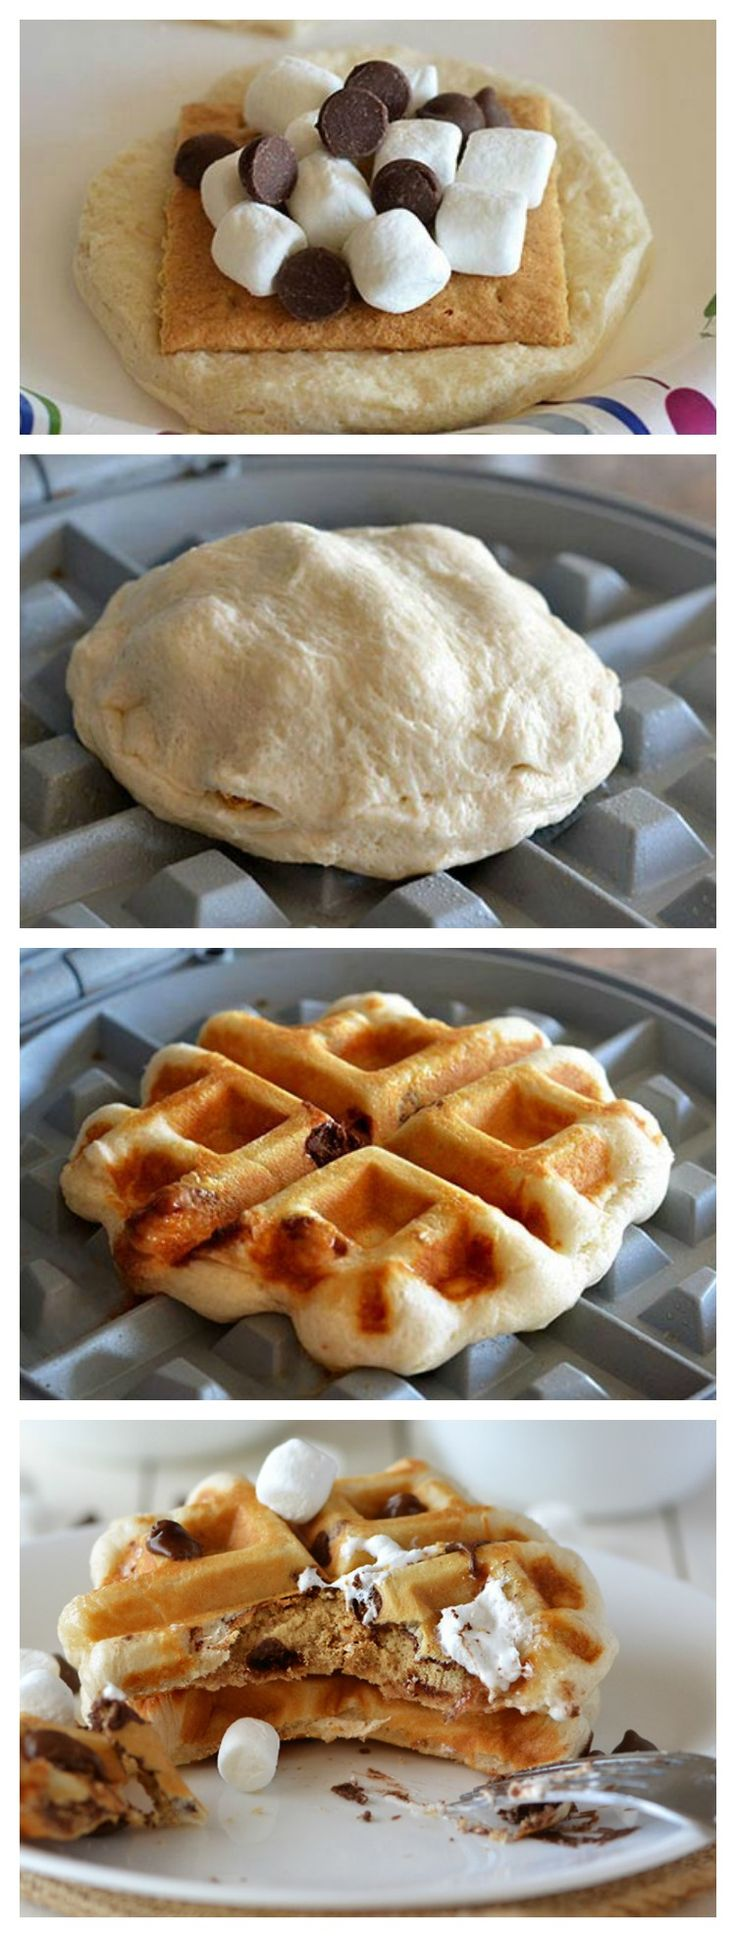 Satisfy s'mores cravings any time with your waffle iron and four ingredients you probably have already!